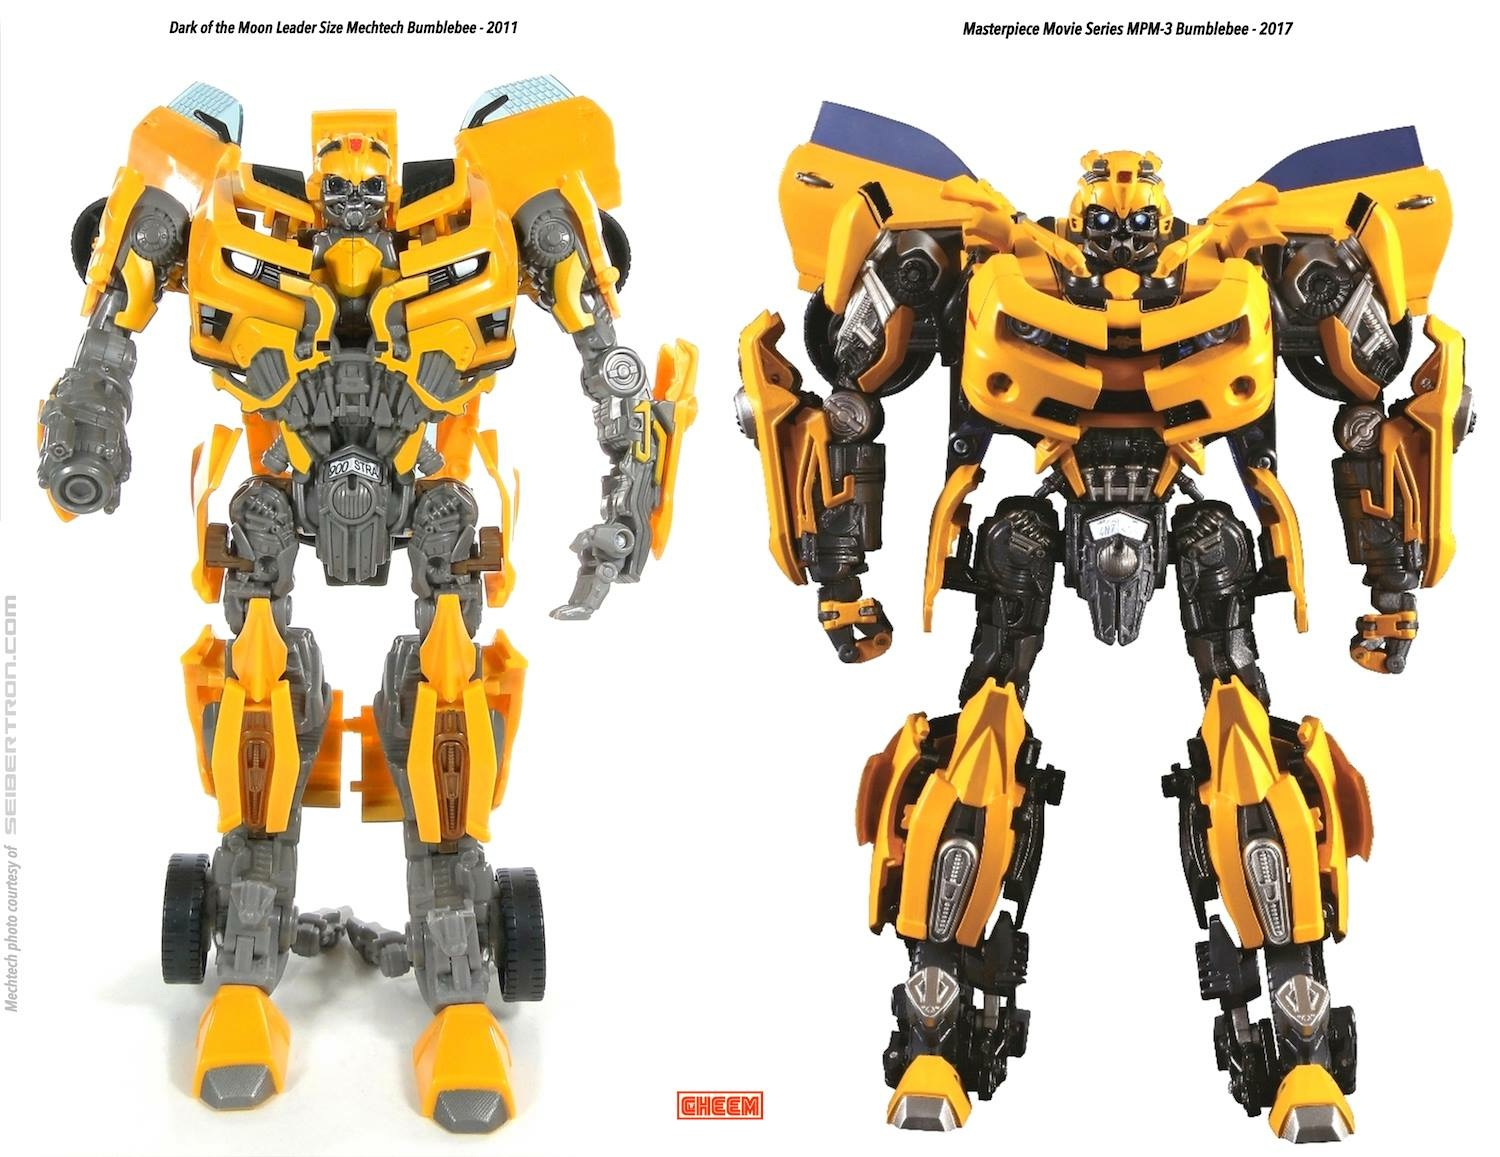 MPM3-masterpiece-movie-bumblebee-comparison-bot